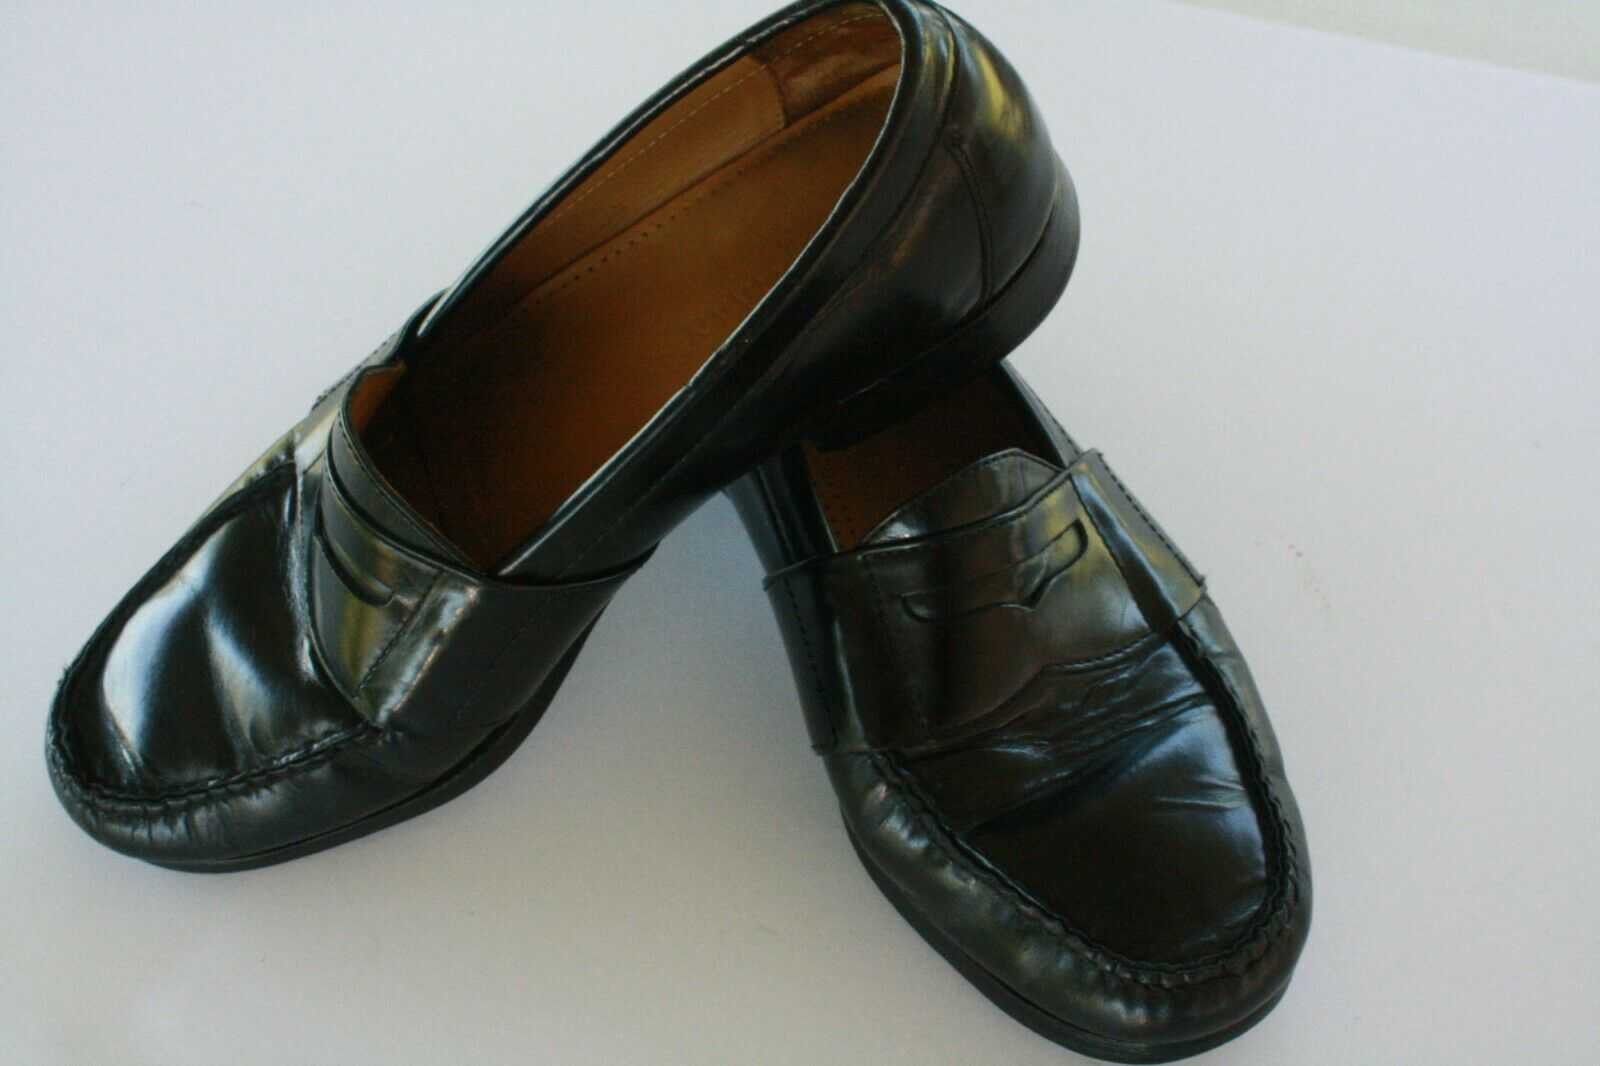 Cole Haan Men's Black Leather Slip On Casual Penny Loafers Size 8.5 M EUC image 2